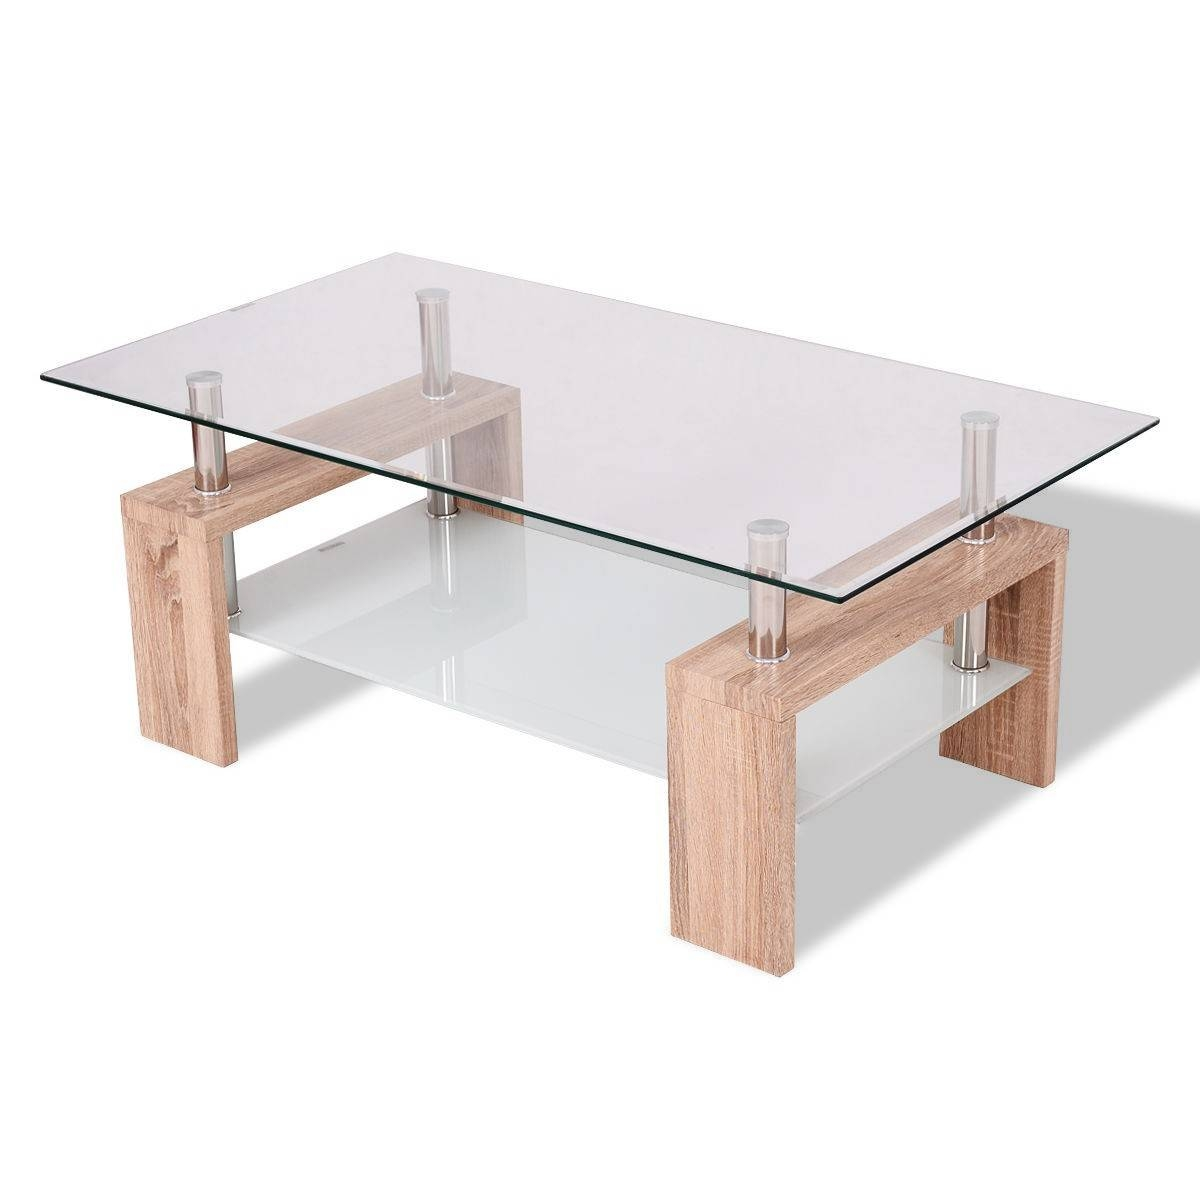 Rectangular Tempered Glass Coffee Table W/ Shelf - Coffee Tables for Glass Coffee Tables With Shelf (Image 23 of 30)